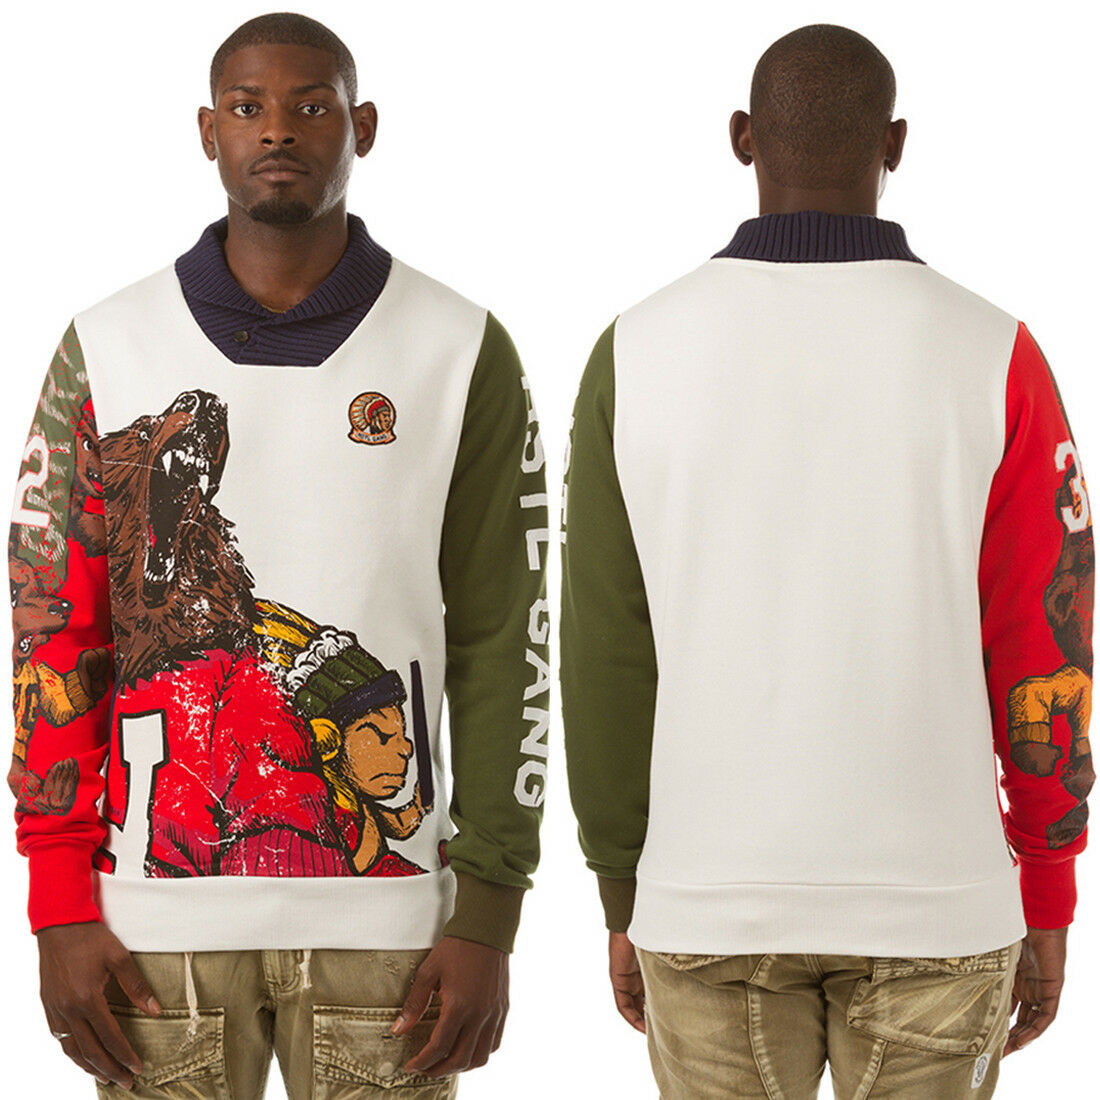 NEW HUSTLE GANG THE NATIVE COCONUT MILK 271-8305 Sweaters